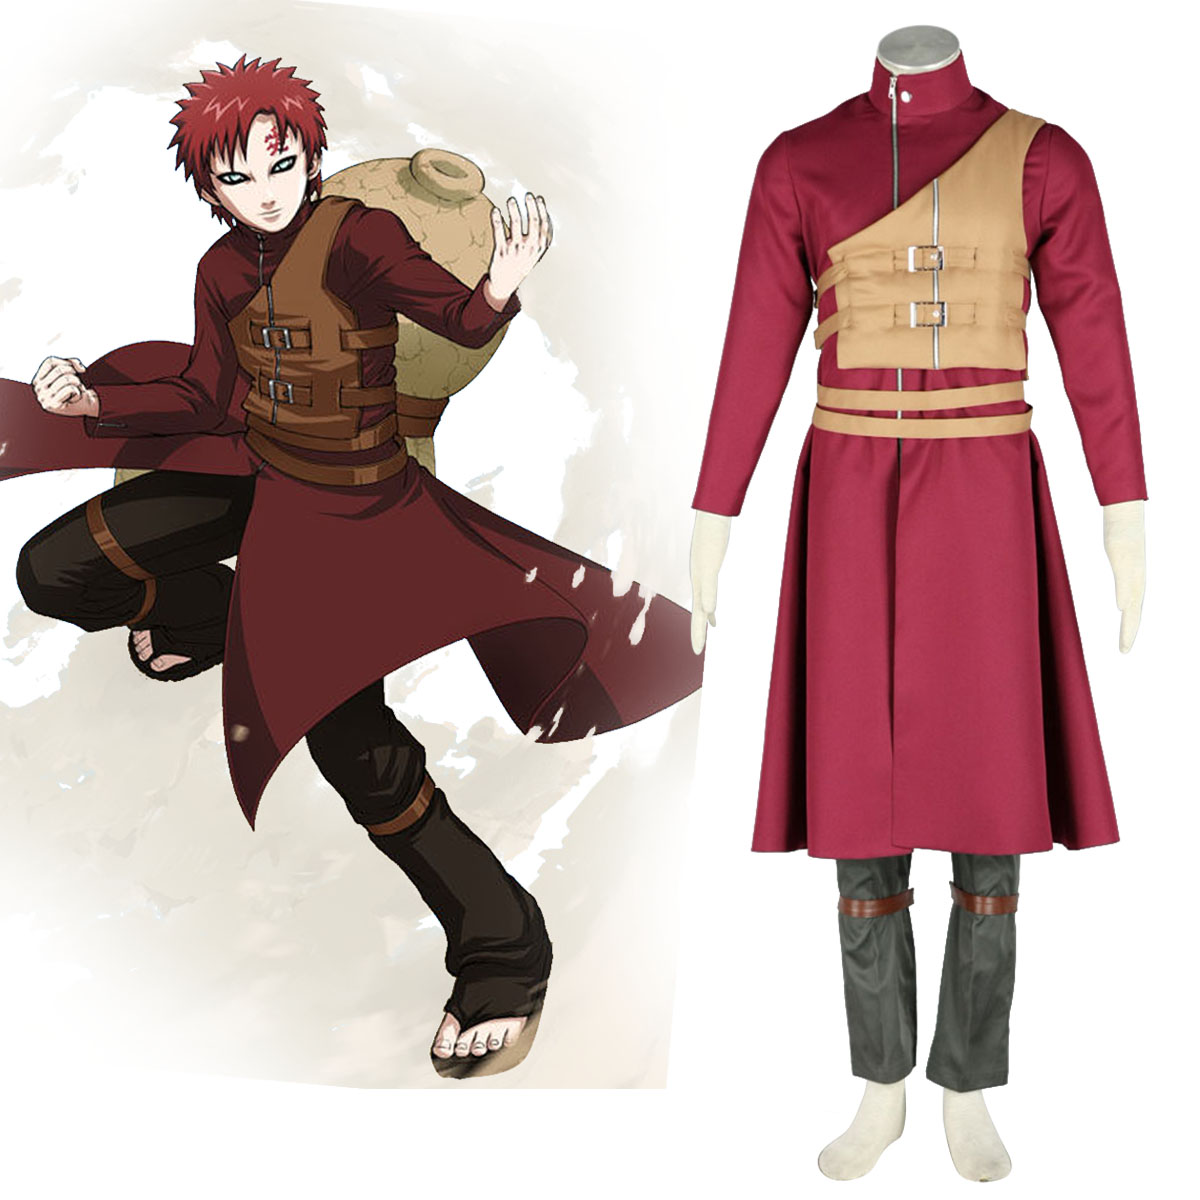 Naruto Shippuden Gaara 6 Anime Cosplay Costumes Outfit